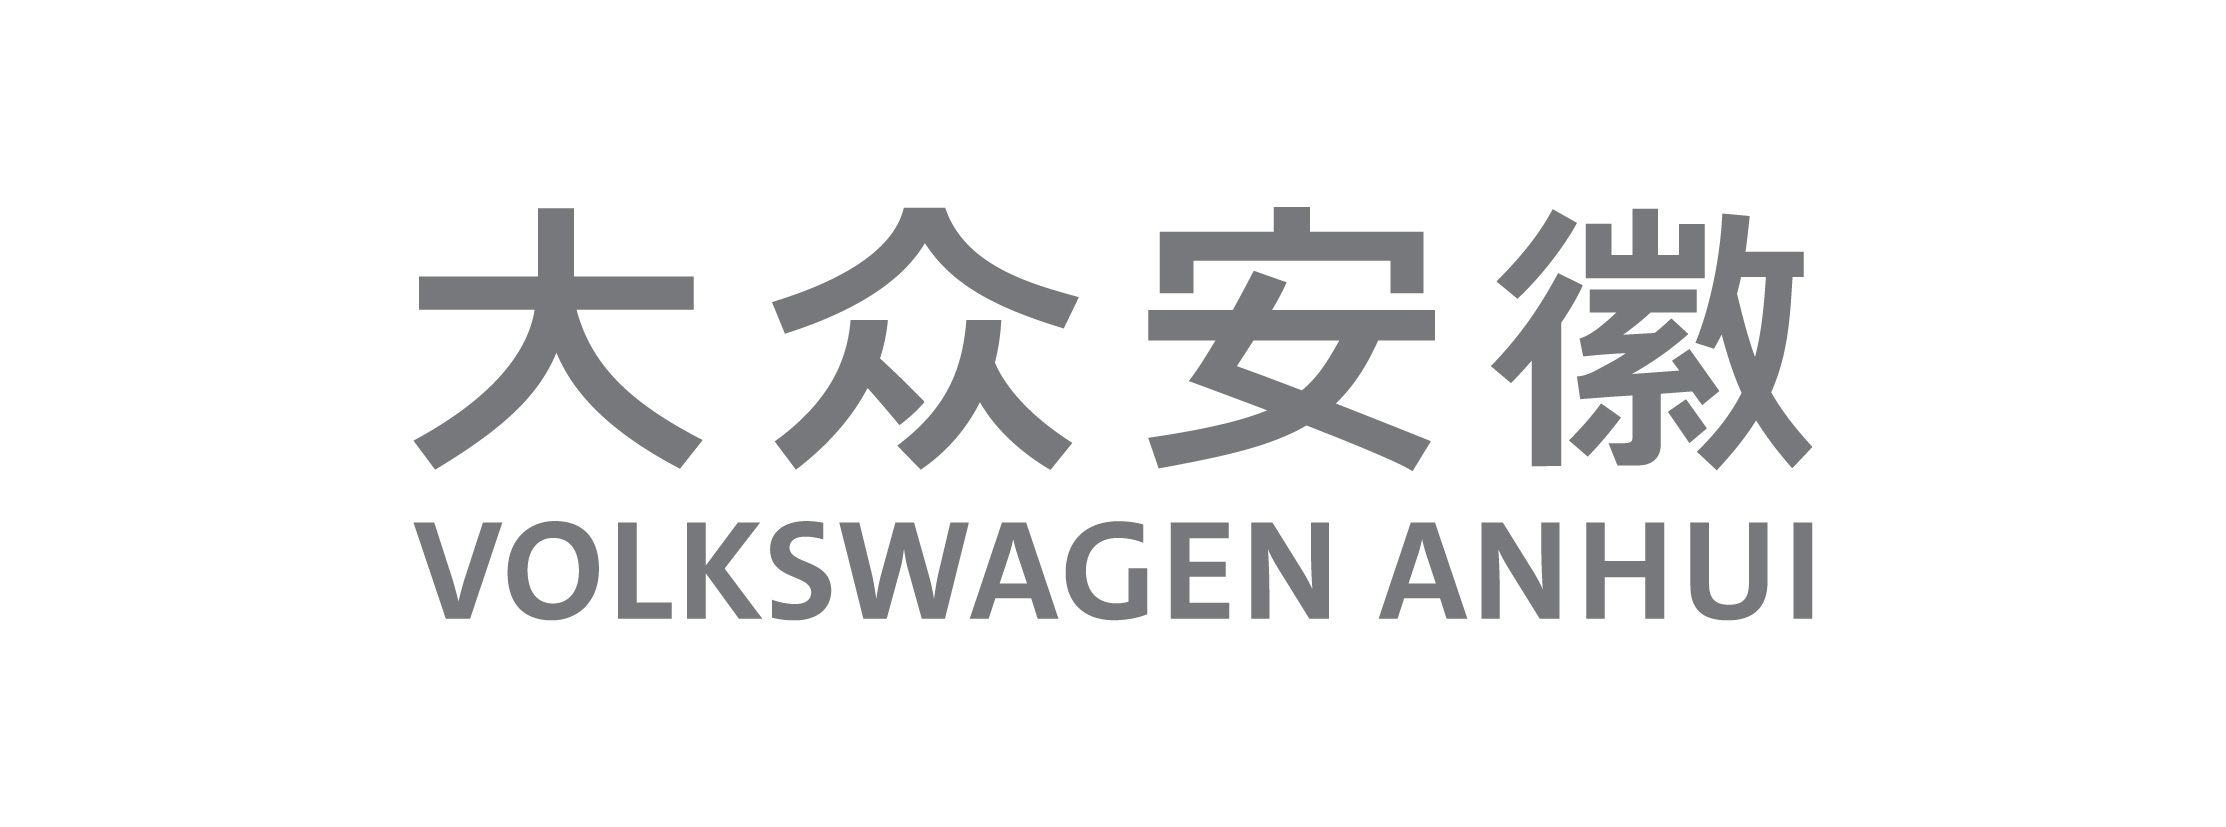 Volkswagen (Anhui) Automotive Company Limited